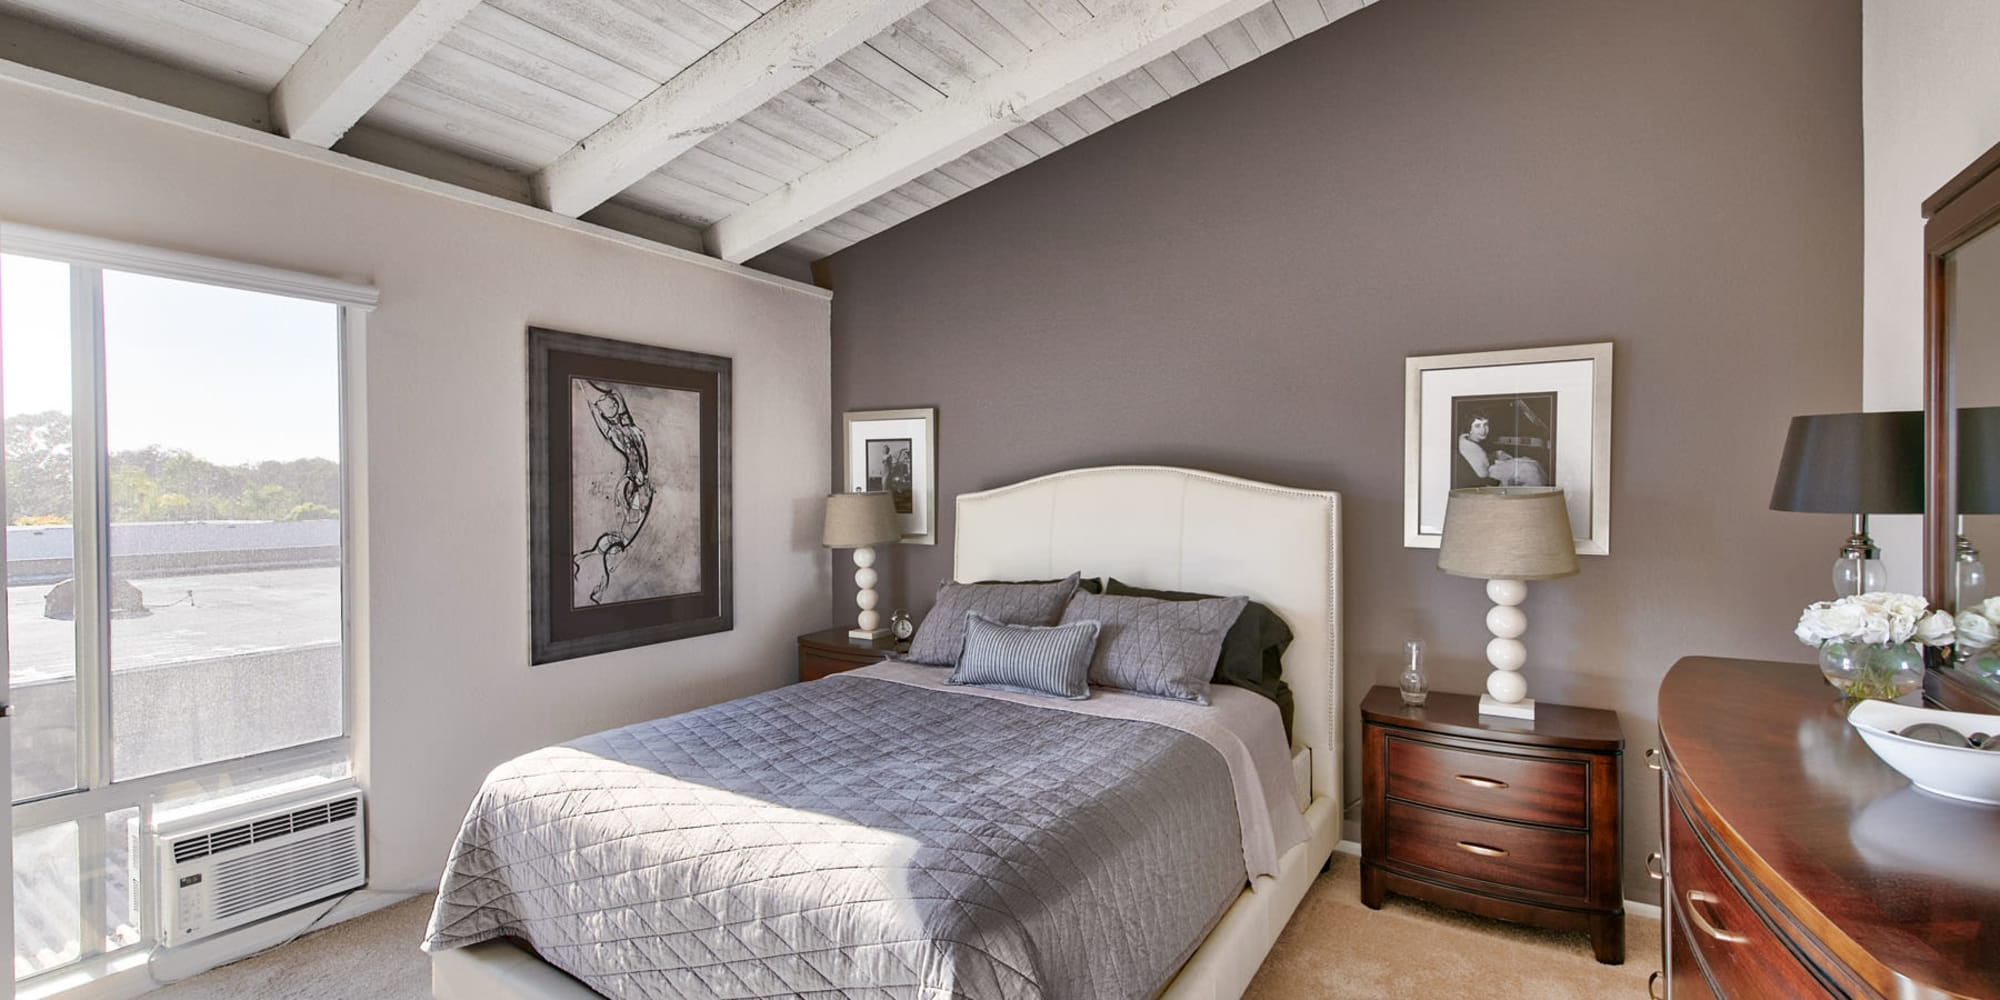 Accent wall and vaulted ceiling in a model apartment's primary bedroom at Mediterranean Village Apartments in Costa Mesa, California